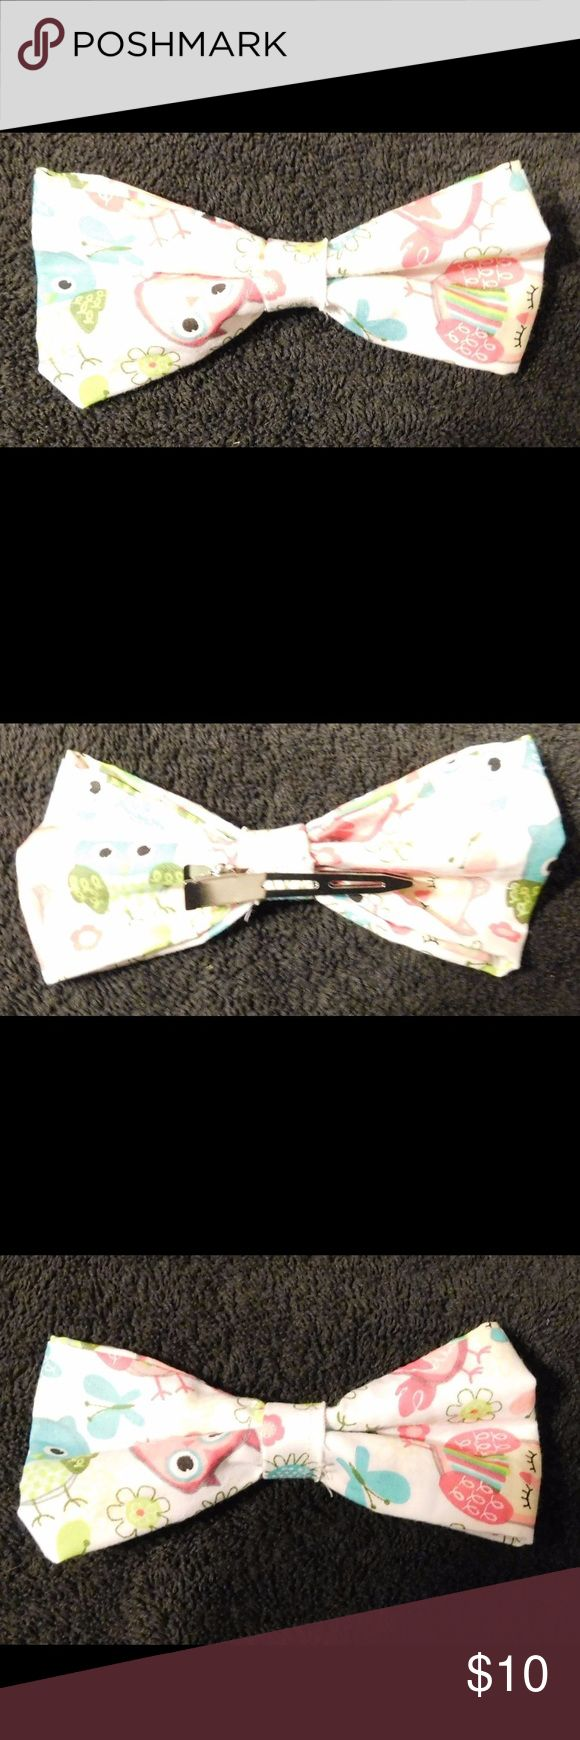 """Homemade Kids Hair Bow/Bow Tie 5"""" by 3"""" Homemade Hair Bow or bow tie for Kids. This has a clip in the back that is not attached so you can change it. This can be a hair bow or bow tie.  Item #712417 Hart's Homemades Accessories Ties"""